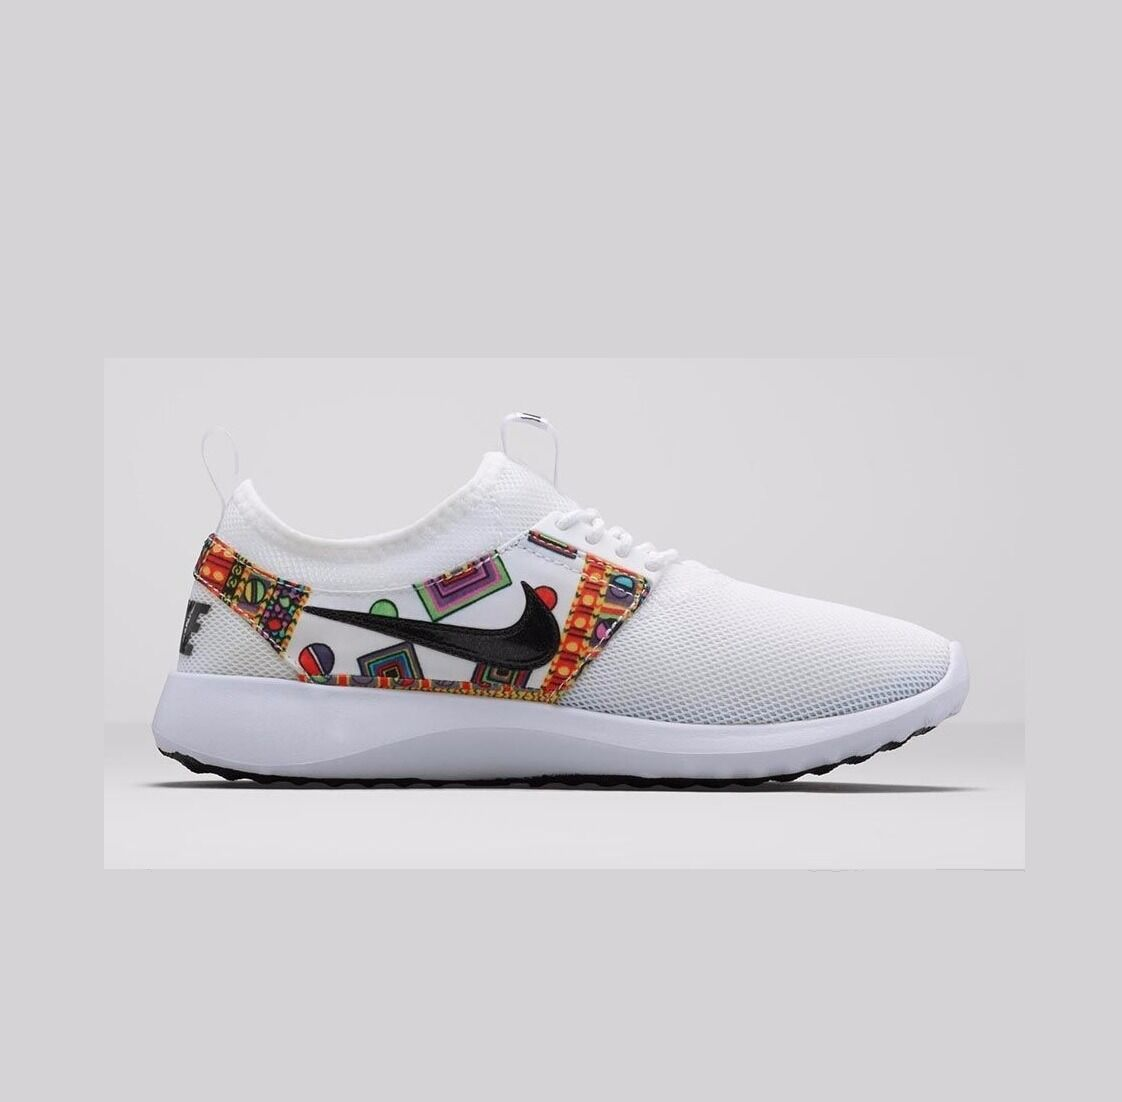 NIKE JUVENATE Femme LIB QS blanc MULTI MULTI MULTI fonctionnement chaussures TRAINERS LIGHT  70/- 760100